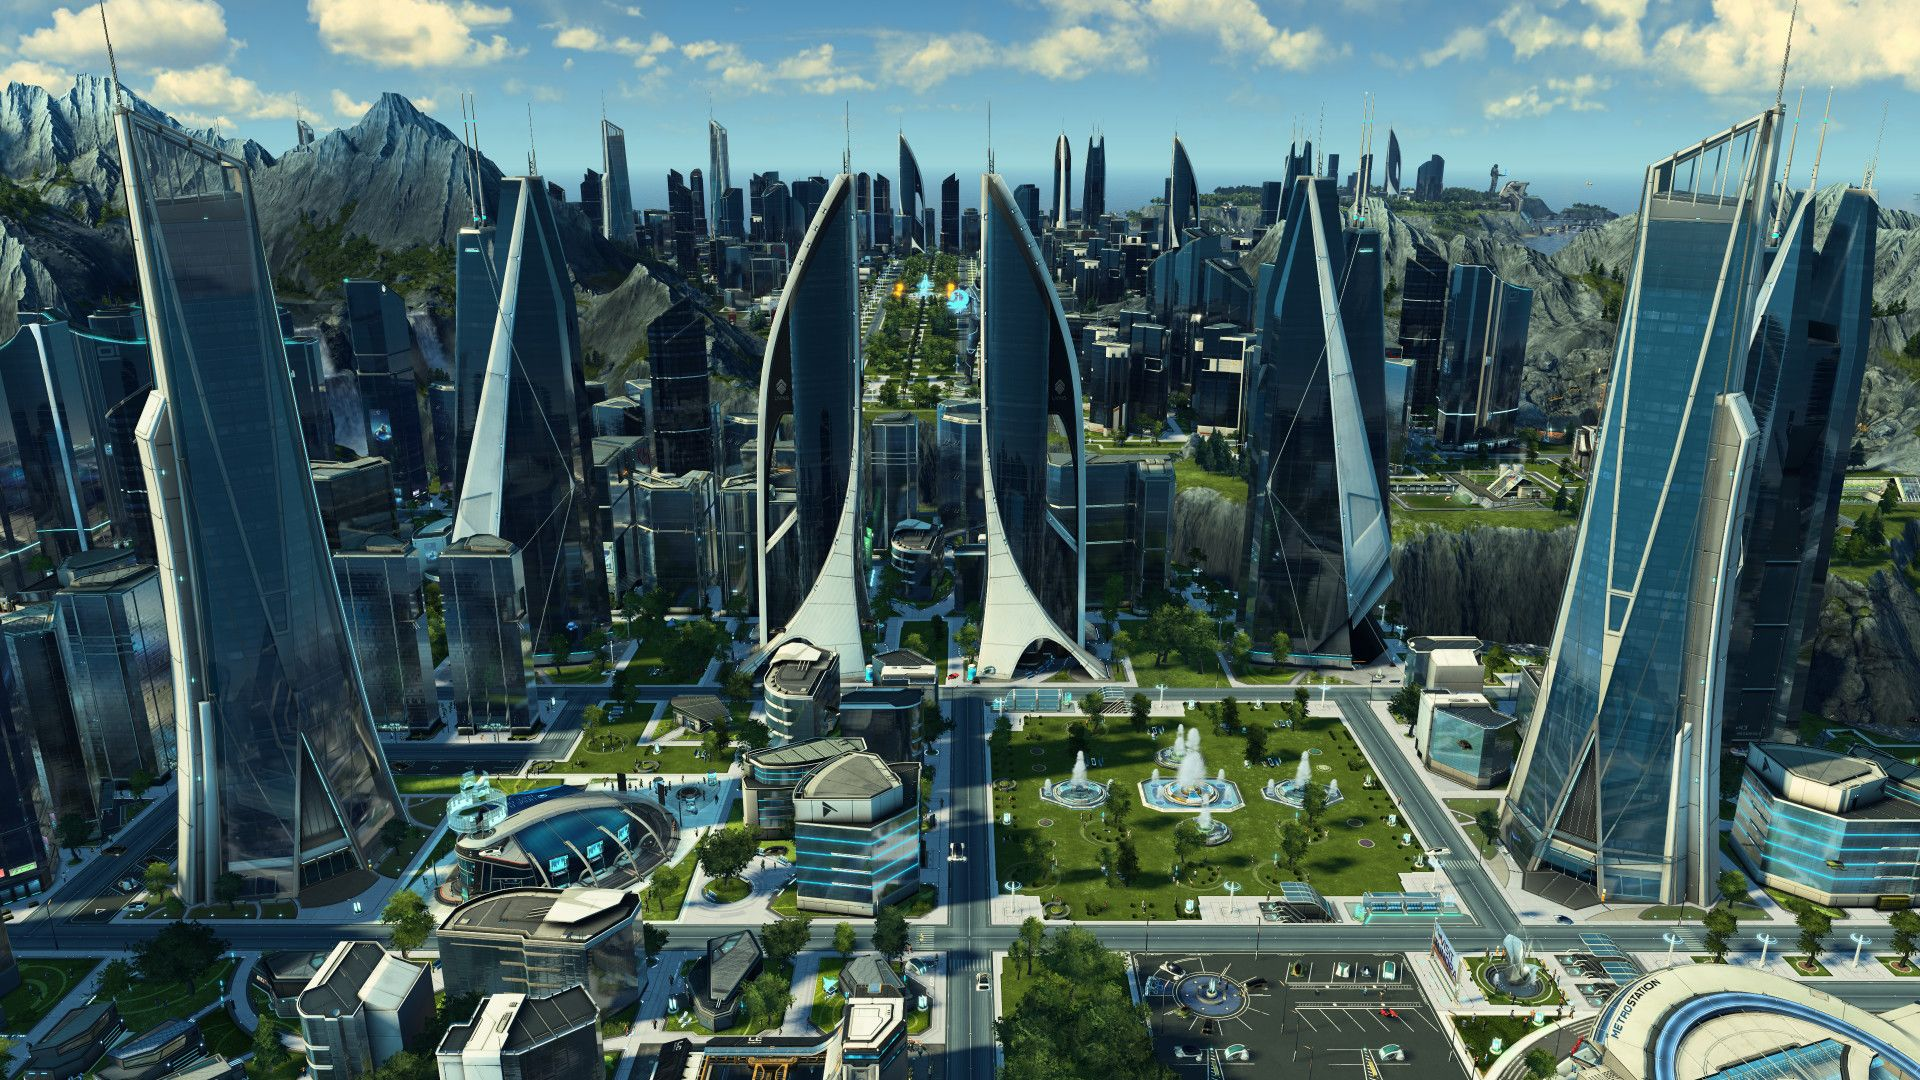 ANNO2205FRONTIERS3.jpg